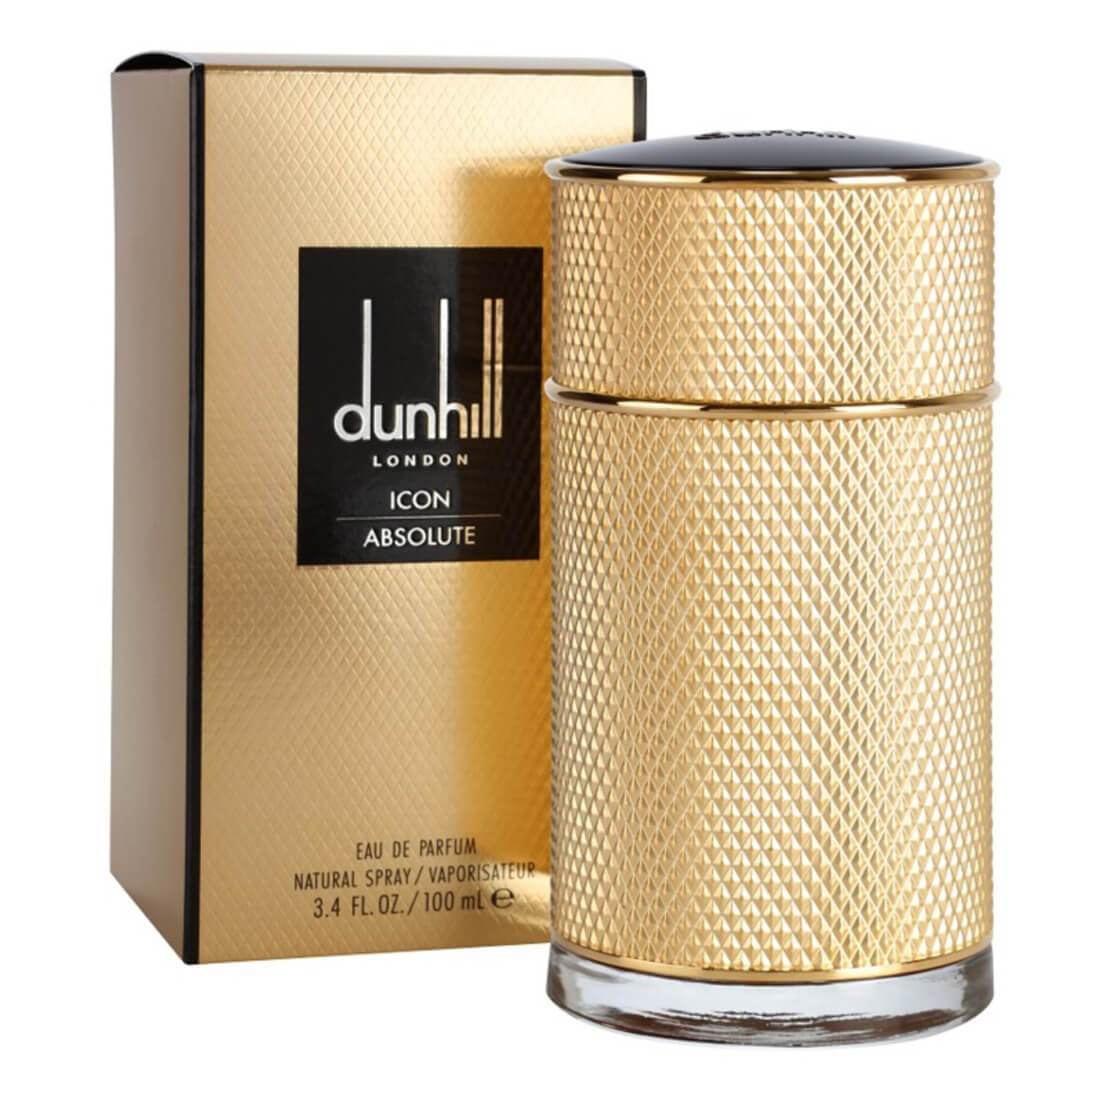 Dunhill Icon Absolute Perfume For Men - 100ml